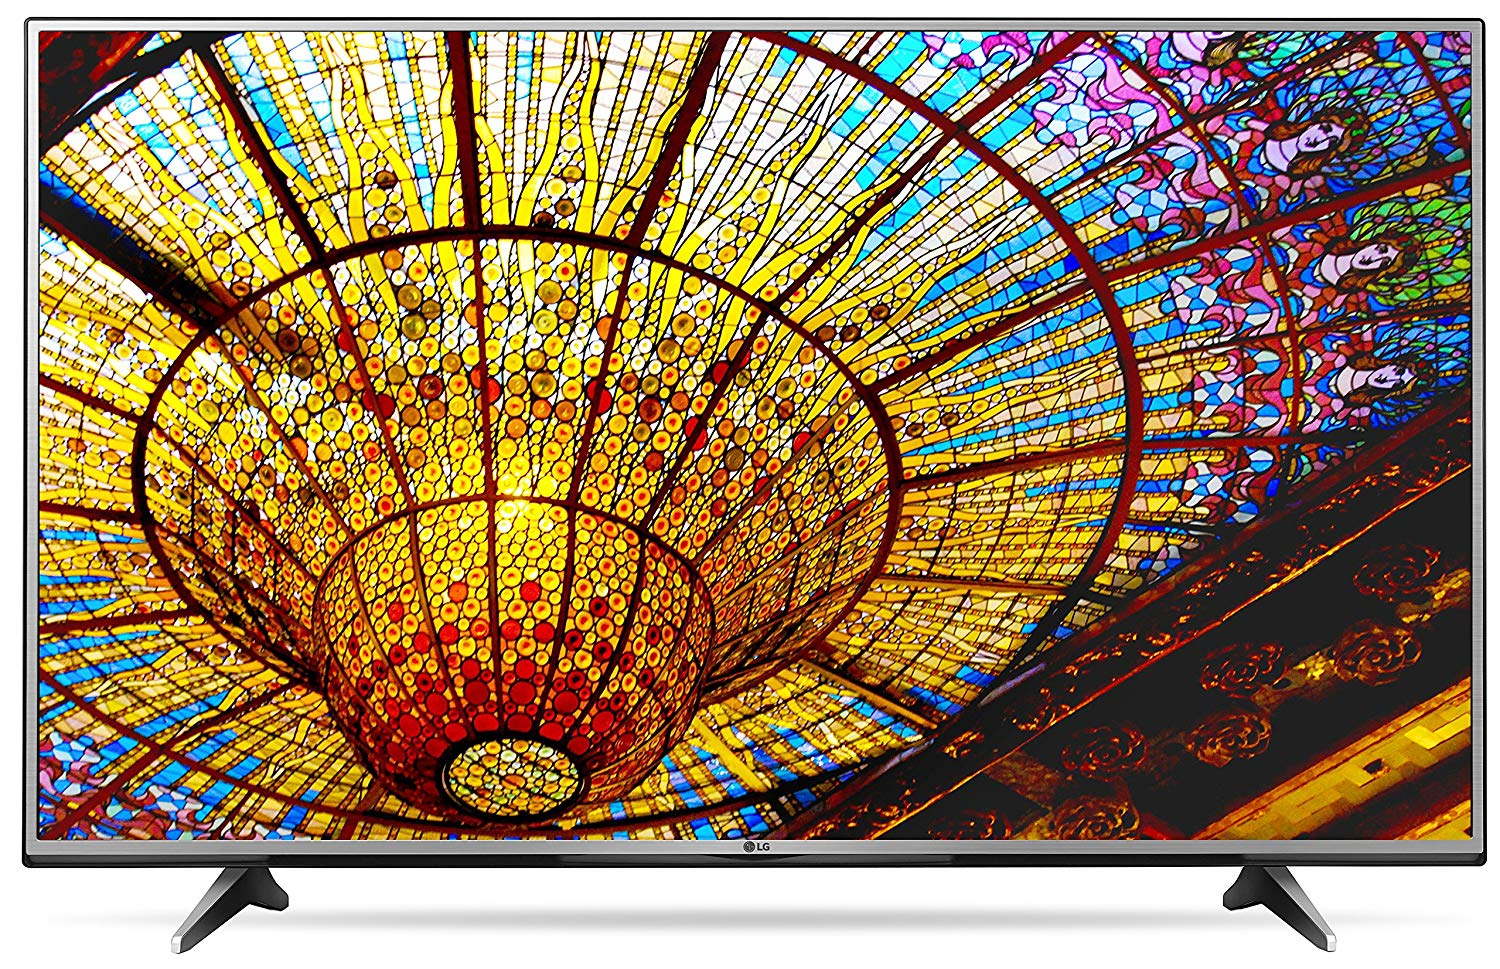 An image of LG 55UH6150 55-Inch HDR 4K LED 120Hz Smart TV with LG TruMotion 120 | Your TV Set